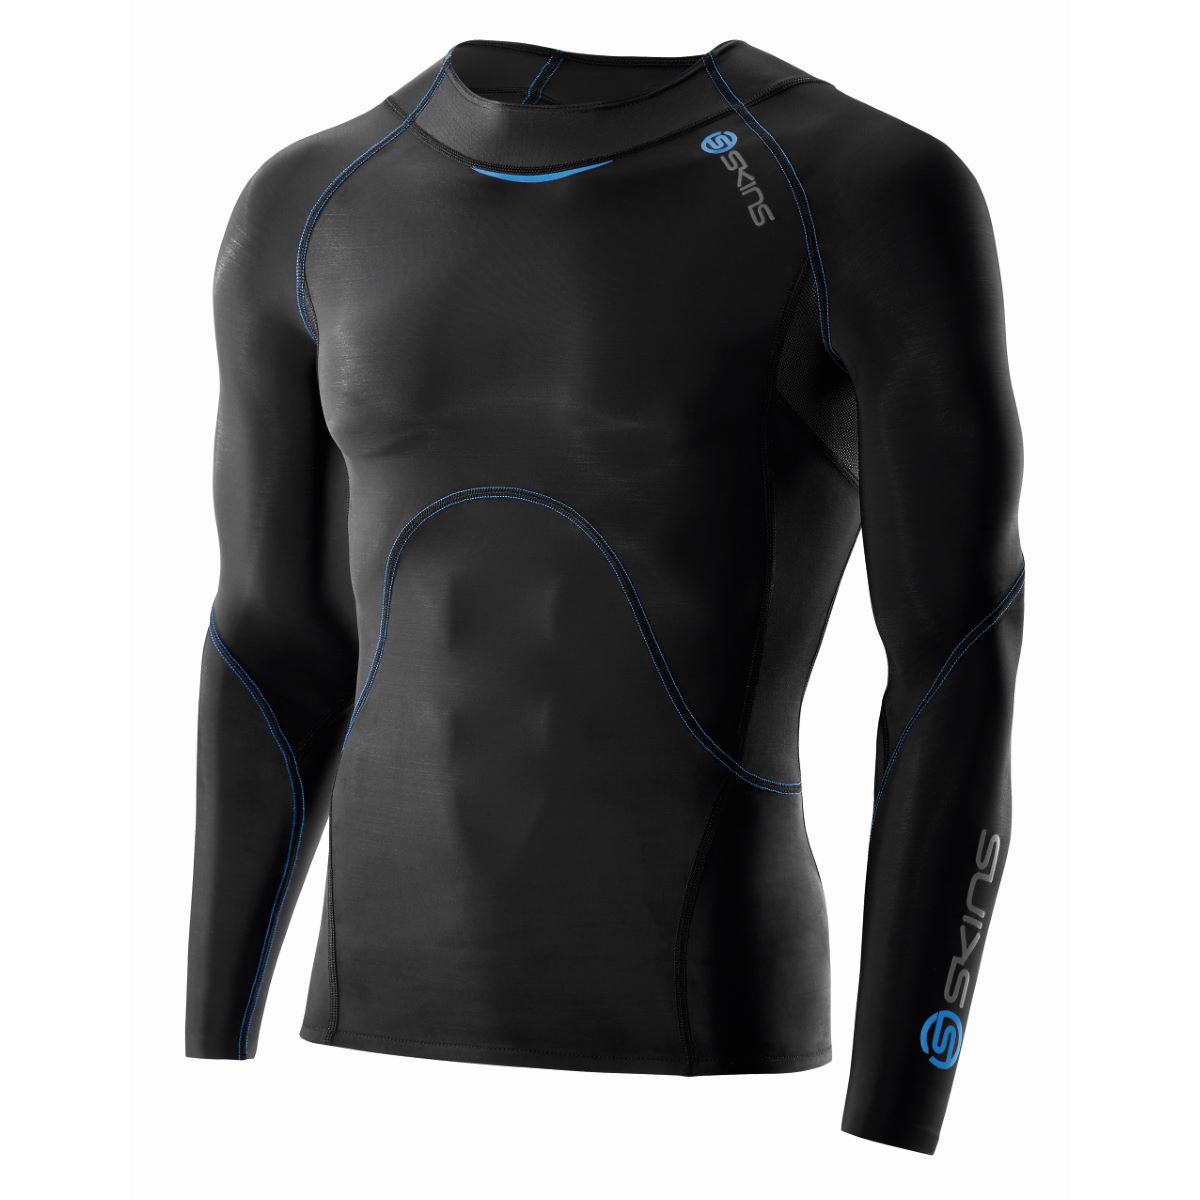 SKINS Ignite A400 Top Long Sleeve